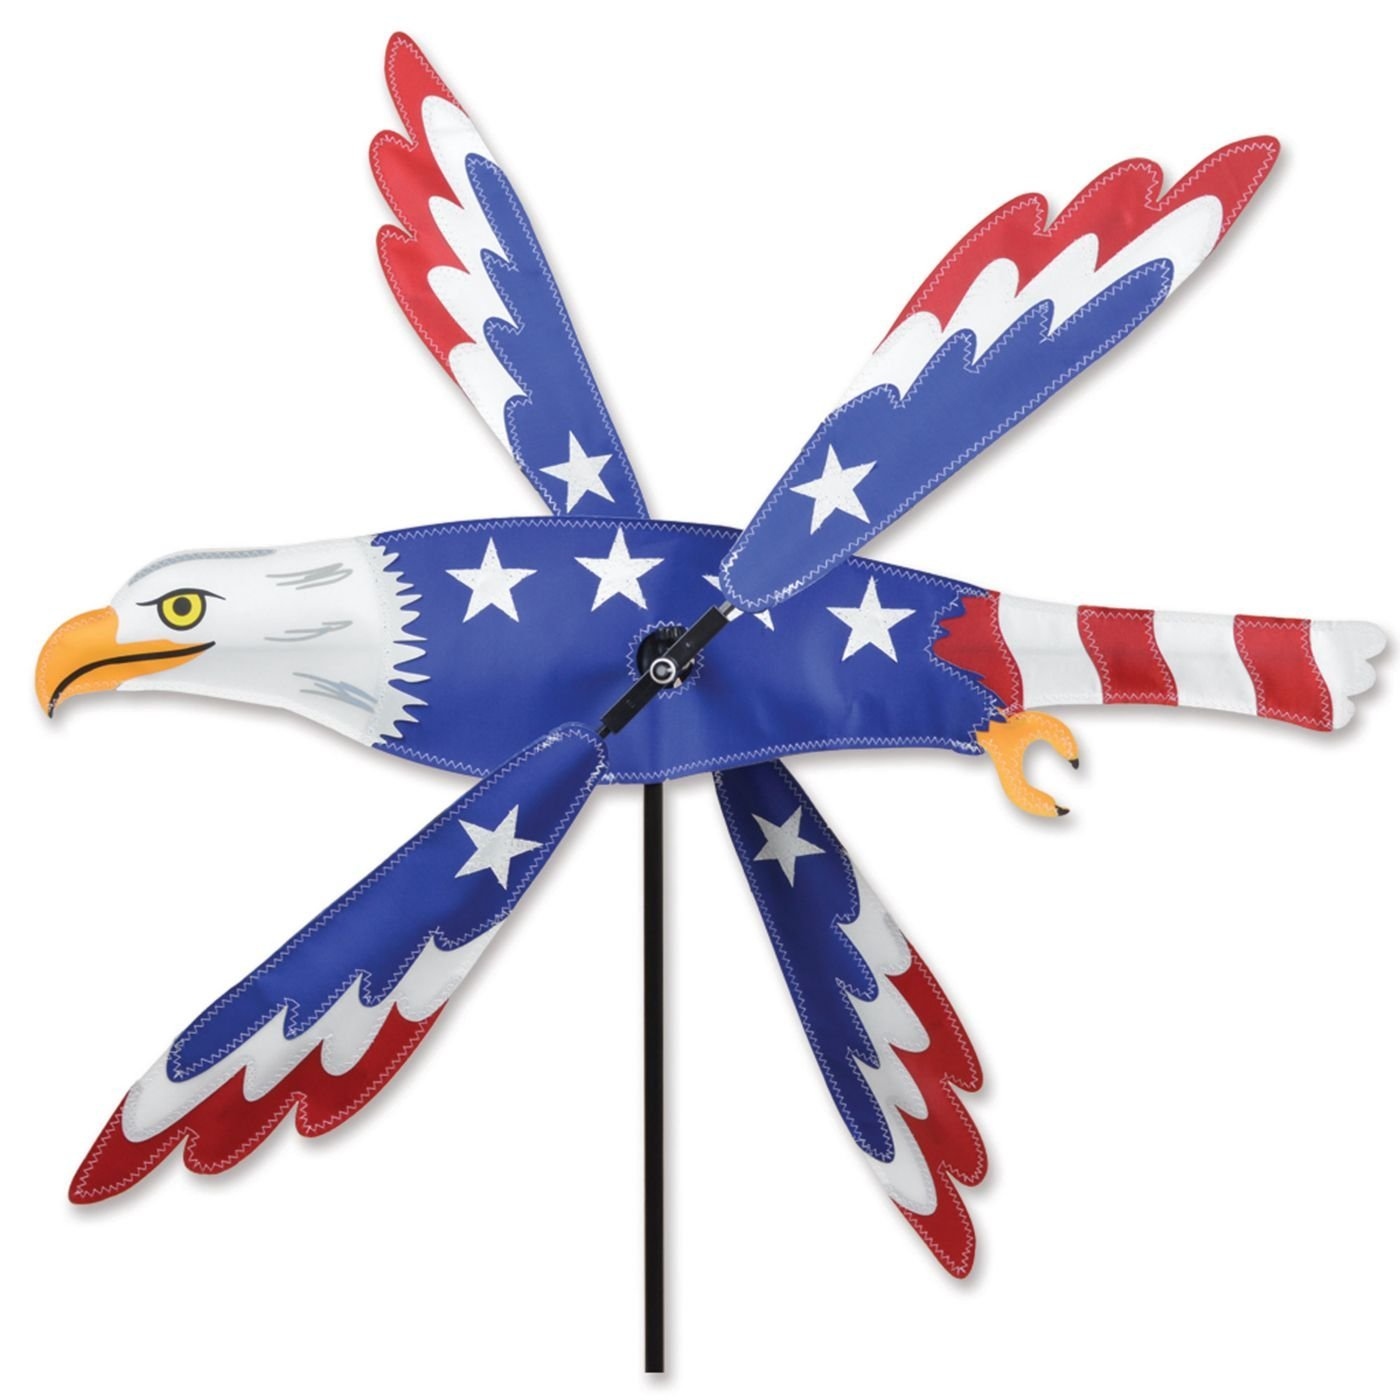 Whirligig Spinner - 25 In. Patriotic Eagle Spinner by Premier Kites